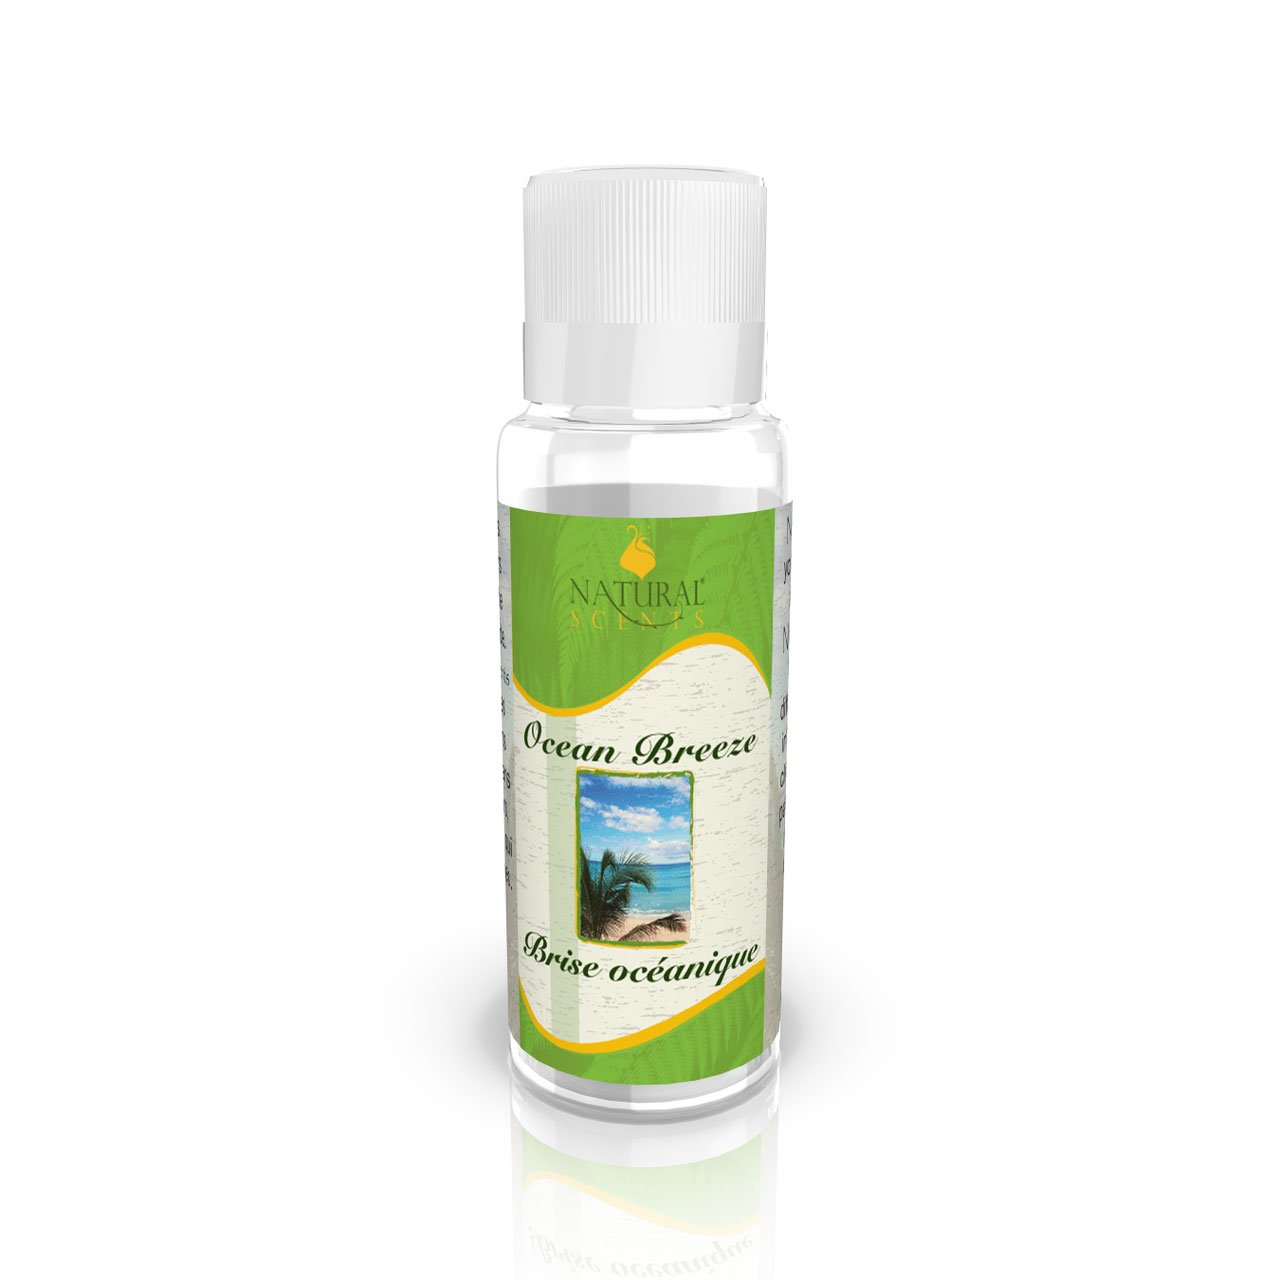 Ocean breeze essential oils